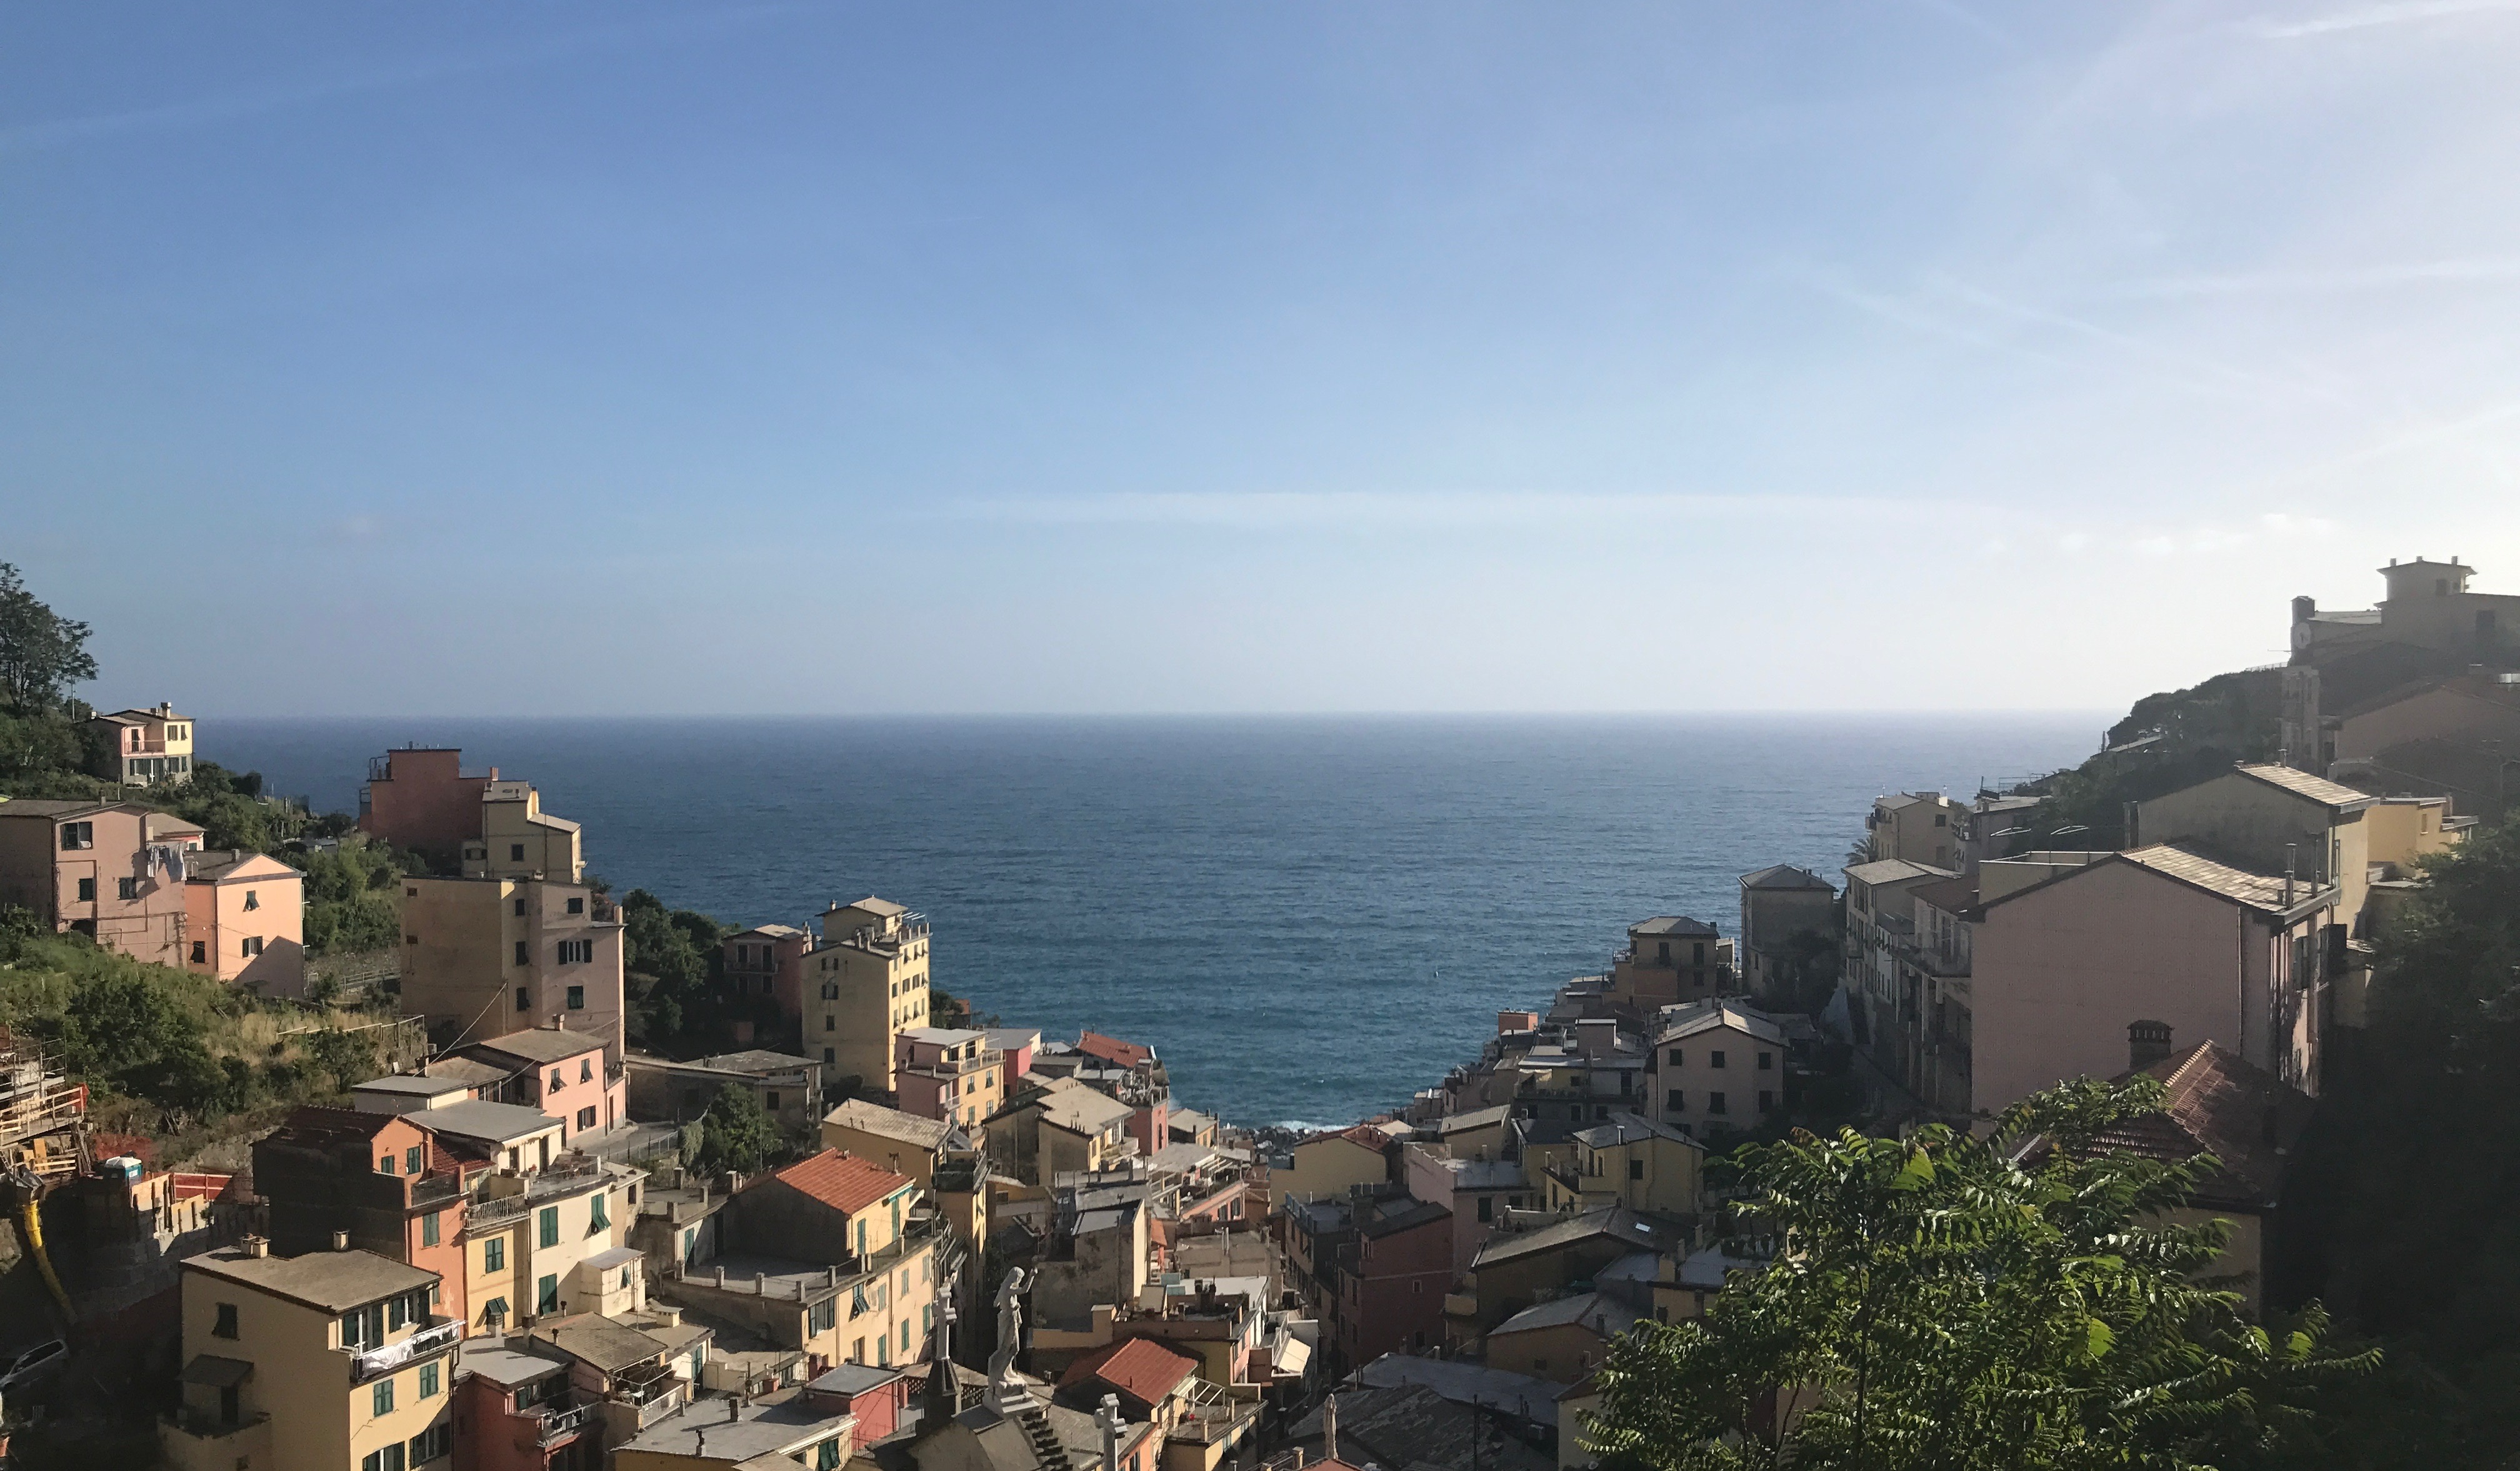 Located in the Italian Riviera, Cinque Terre is a series of five villages spread along the dramatic coastline. Known for its vivid scenery, the villages are only accessible by foot, train or boat.